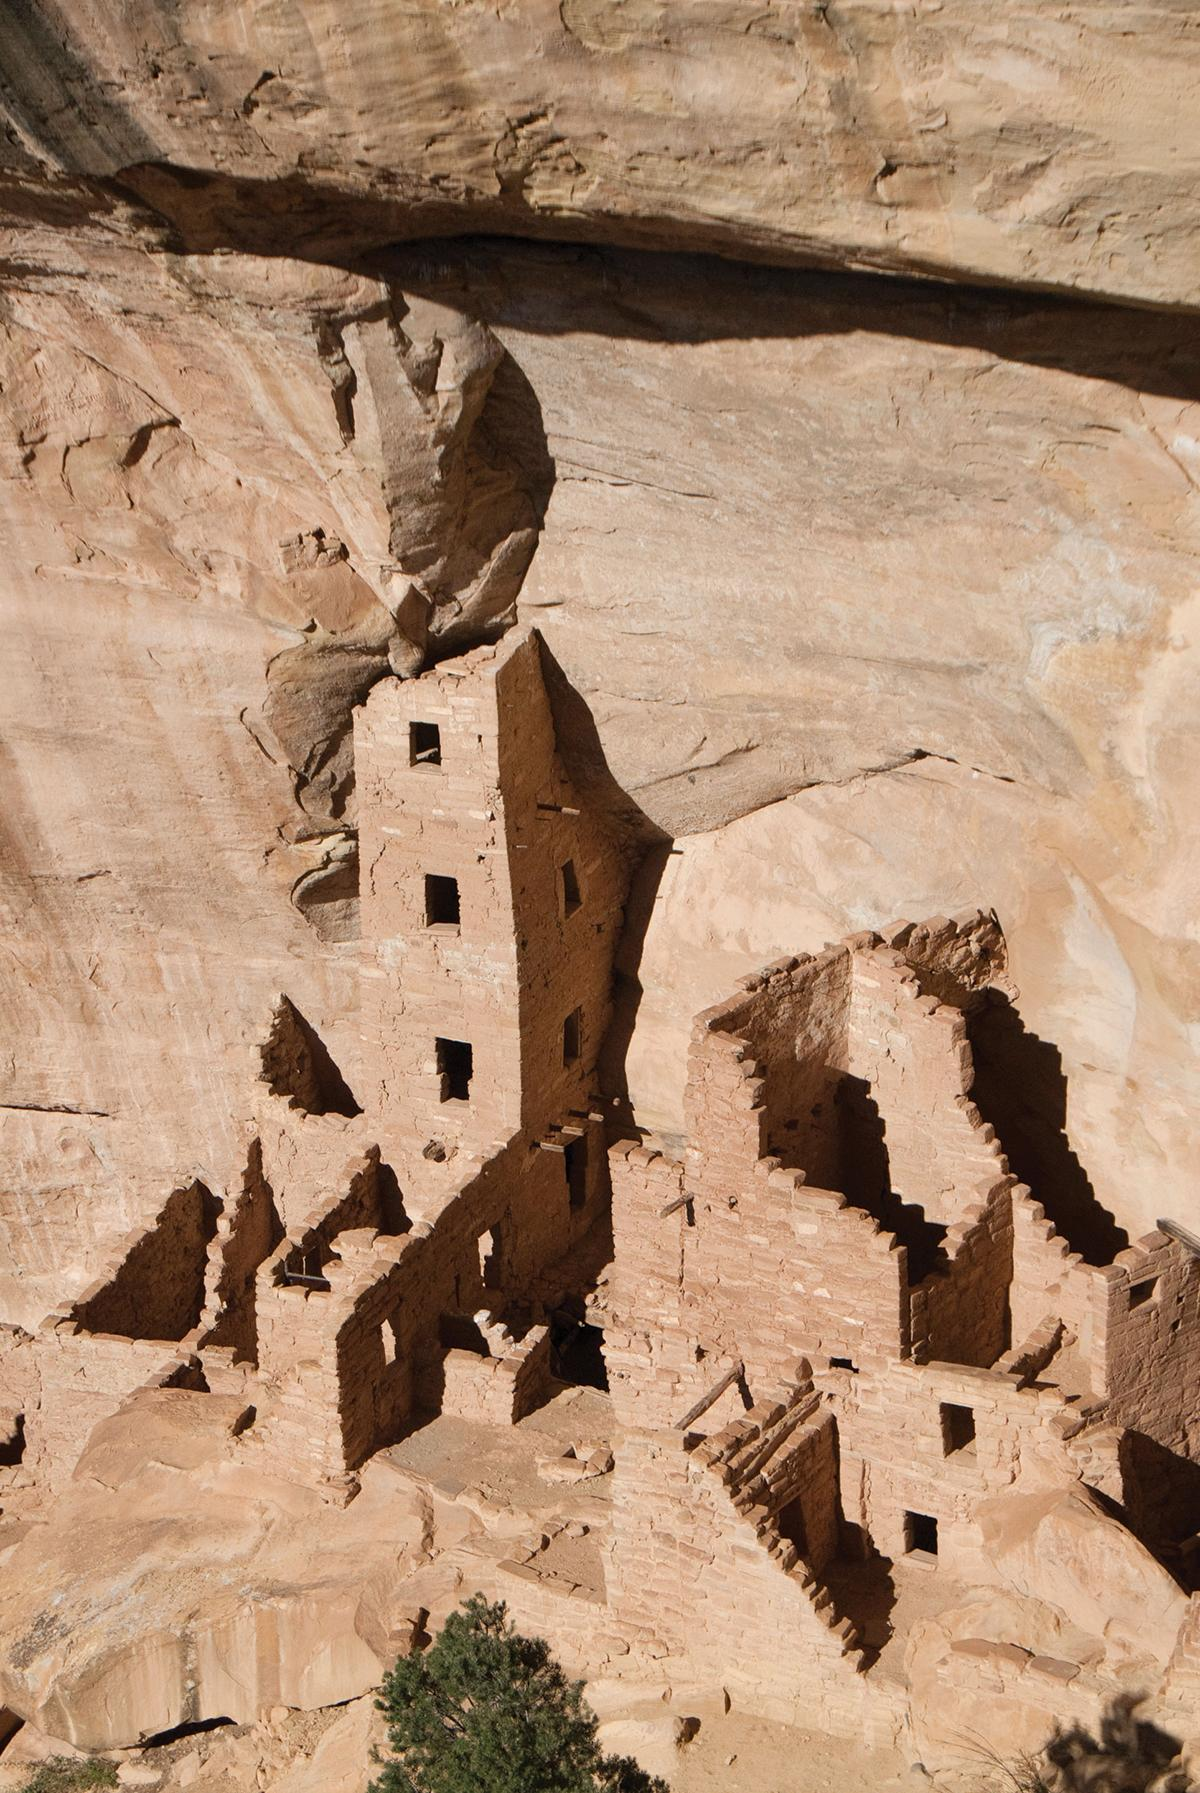 Cliff dwellings at Mesa Verde, carved into tan sandstone